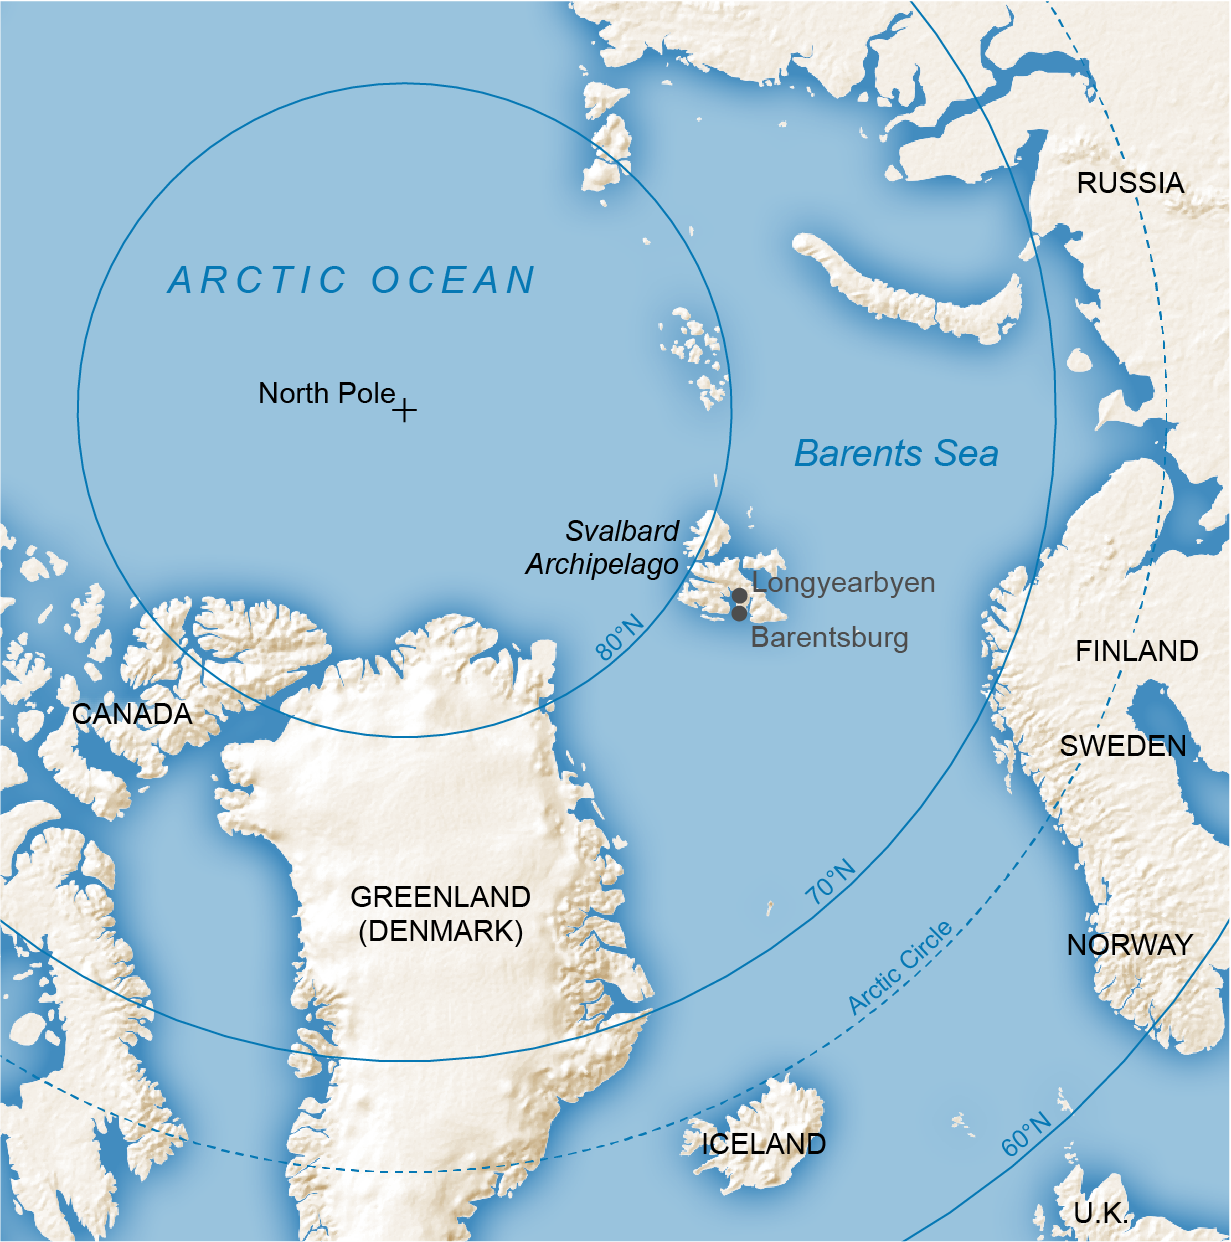 Map shows the location of Longyearbyen, Svalbard.